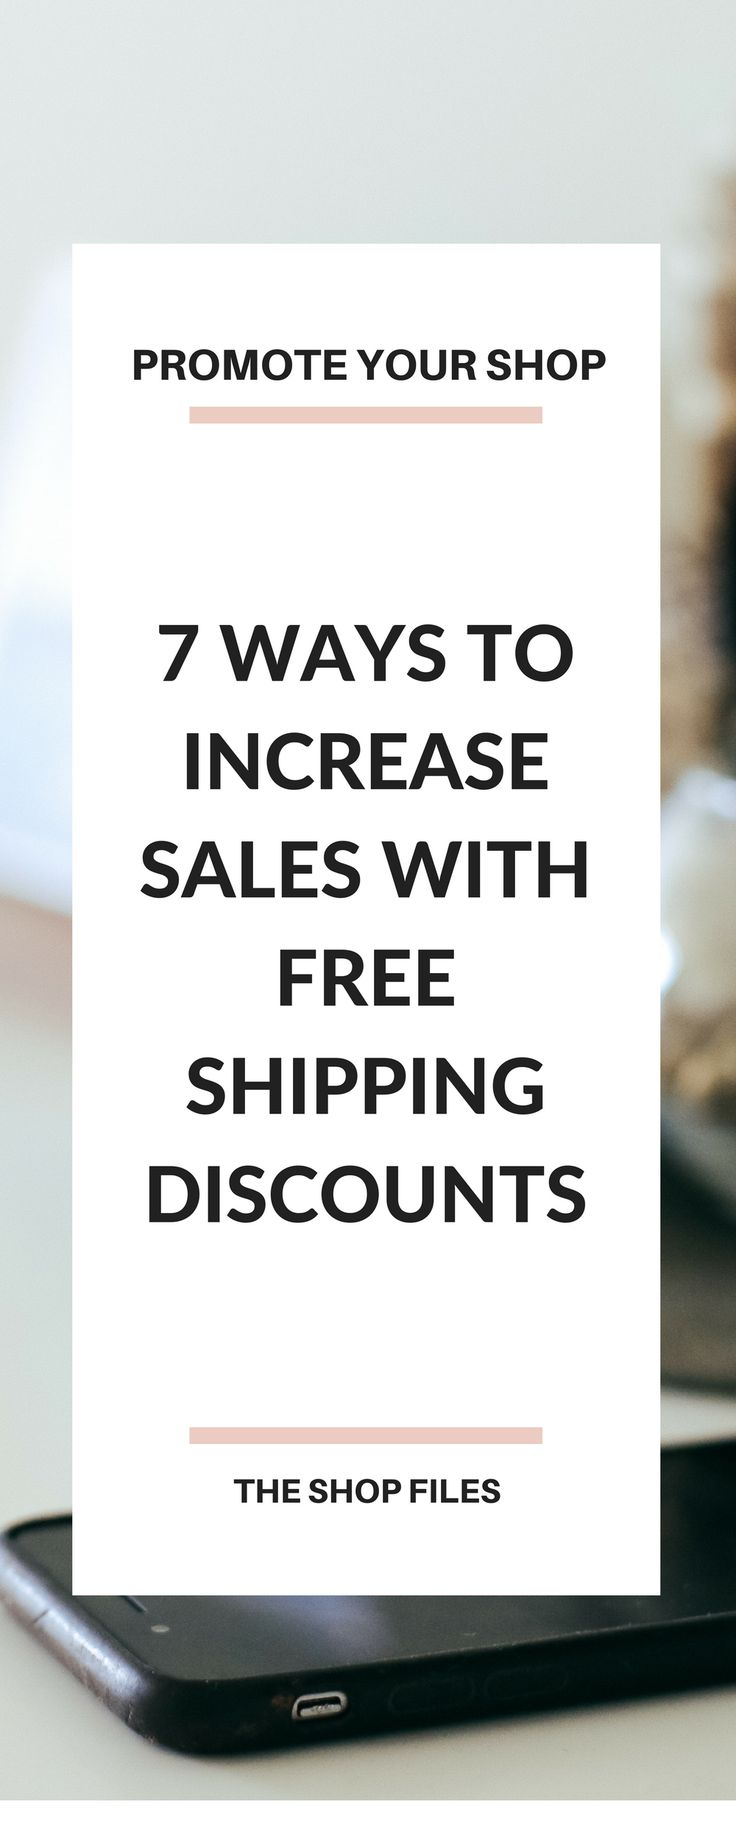 Make Money Online Shops | Seven Ways to Use Free Shipping Discounts to Increase Sales - How to Increase Sales in Your Etsy Shop or Online Store this Holiday Season